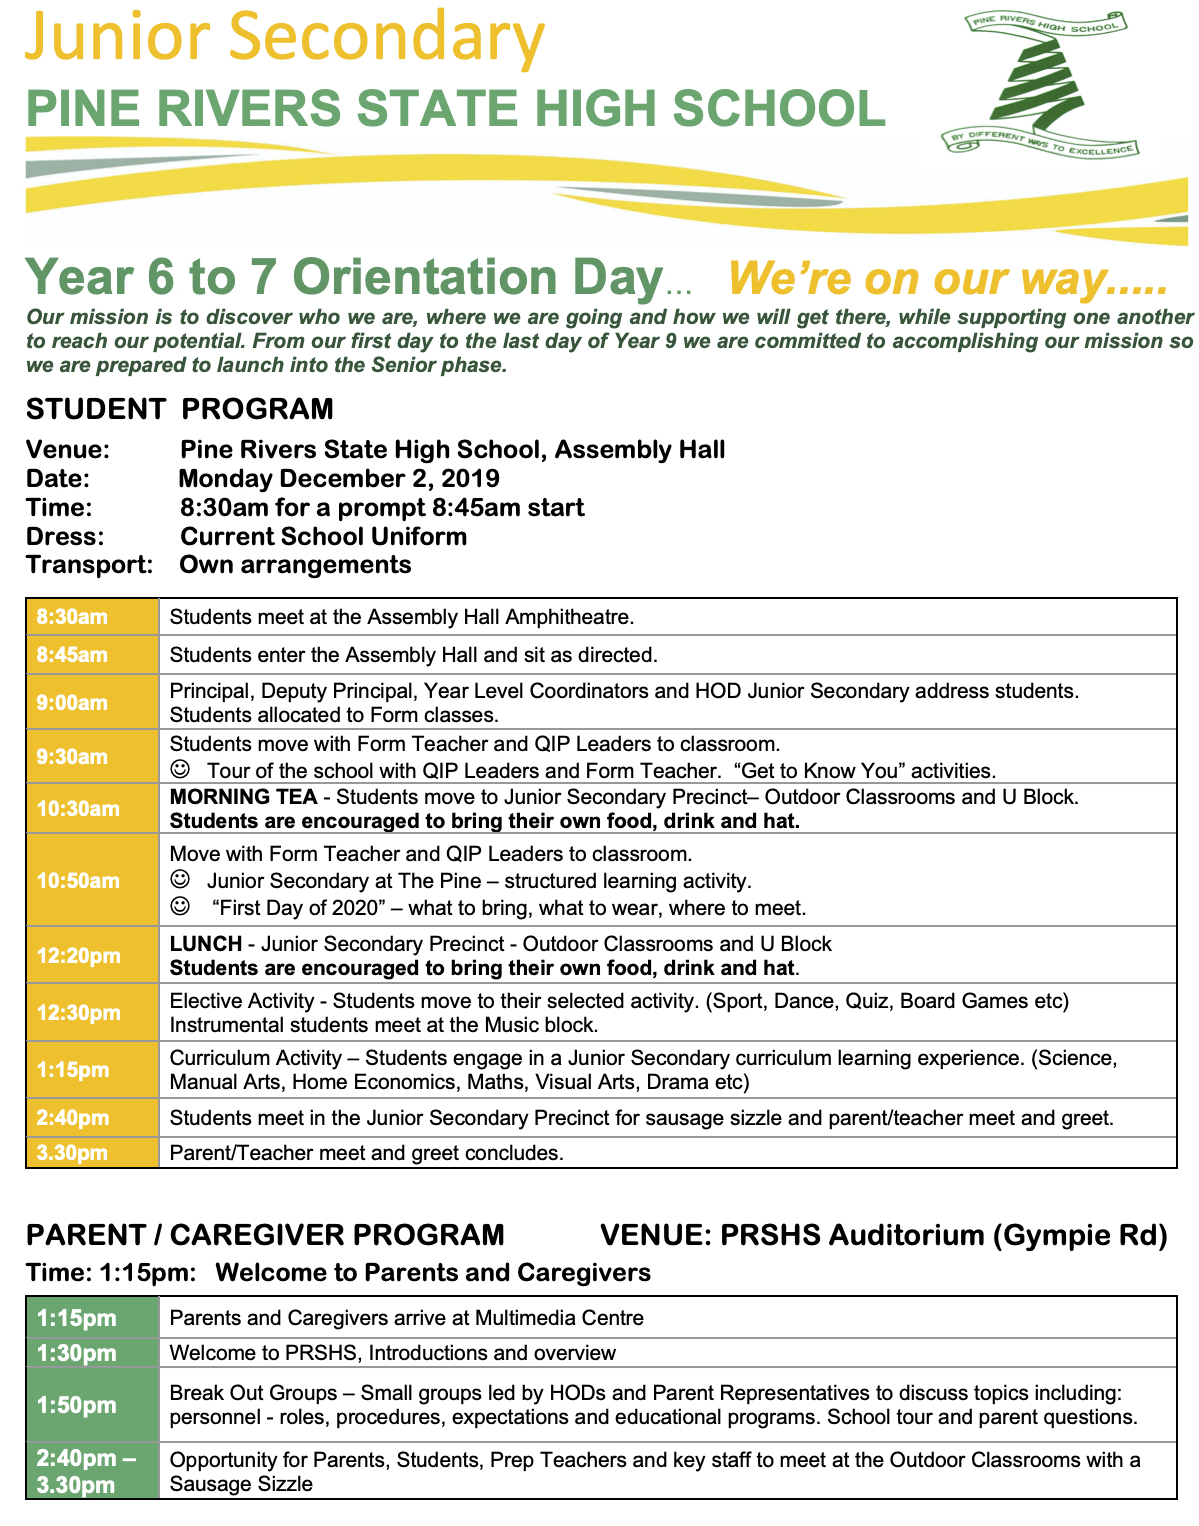 Year 6 Orientation Day Program 2019.jpg